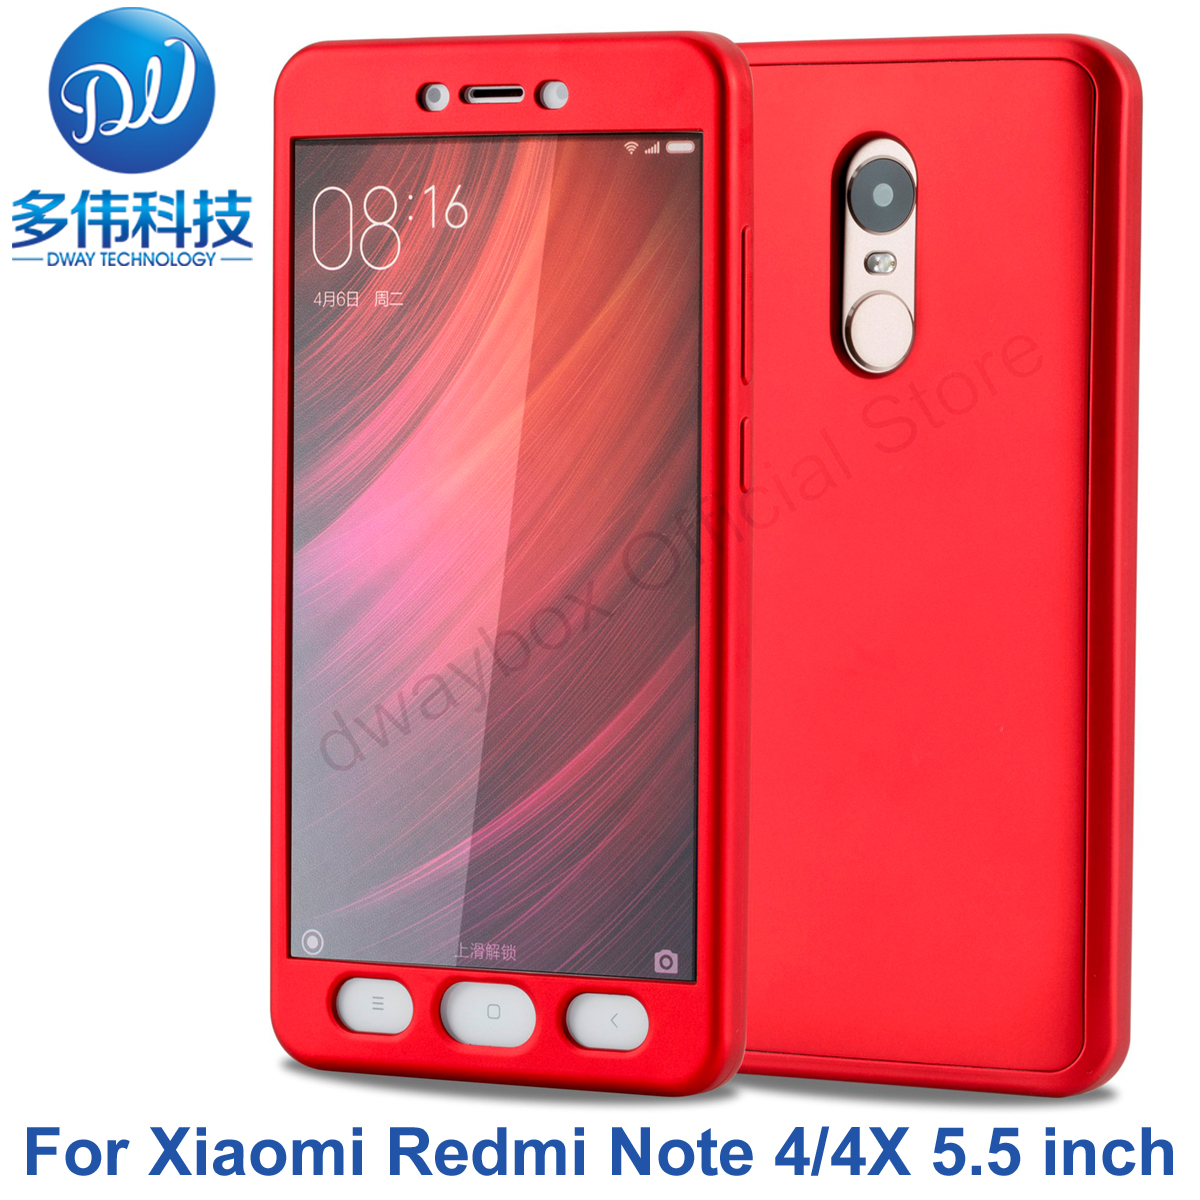 New Fashionable Luxury TPU Soft Silicon 360 Degree Full Body Shockproof Protective Phone Case For Xiaomi